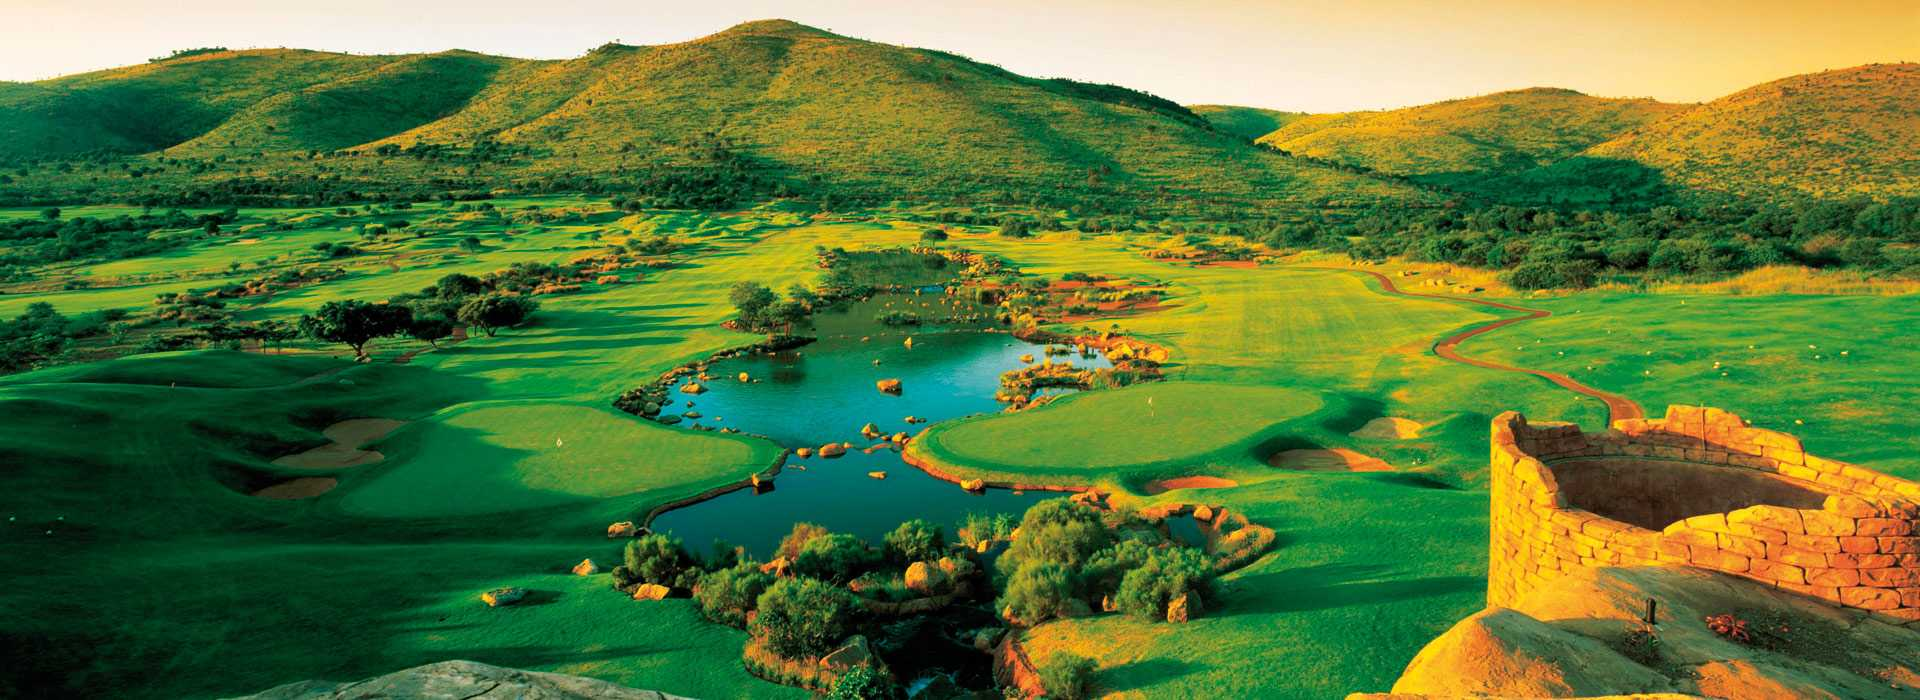 Golf Course At Sun City, South Africa